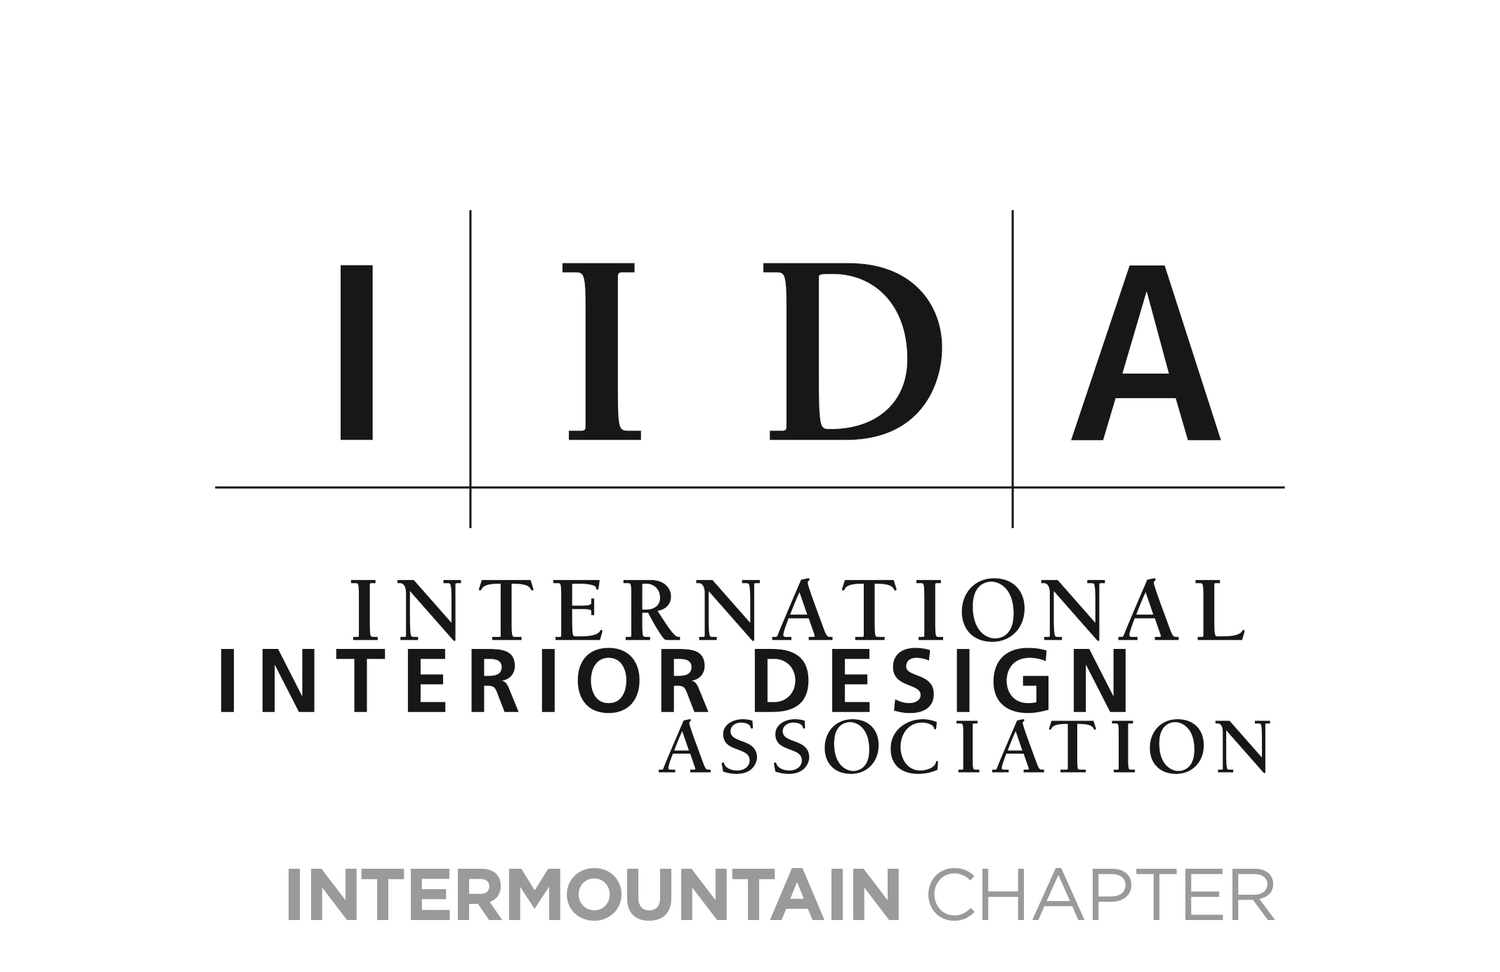 IIDA INTERMOUNTAIN CHAPTER